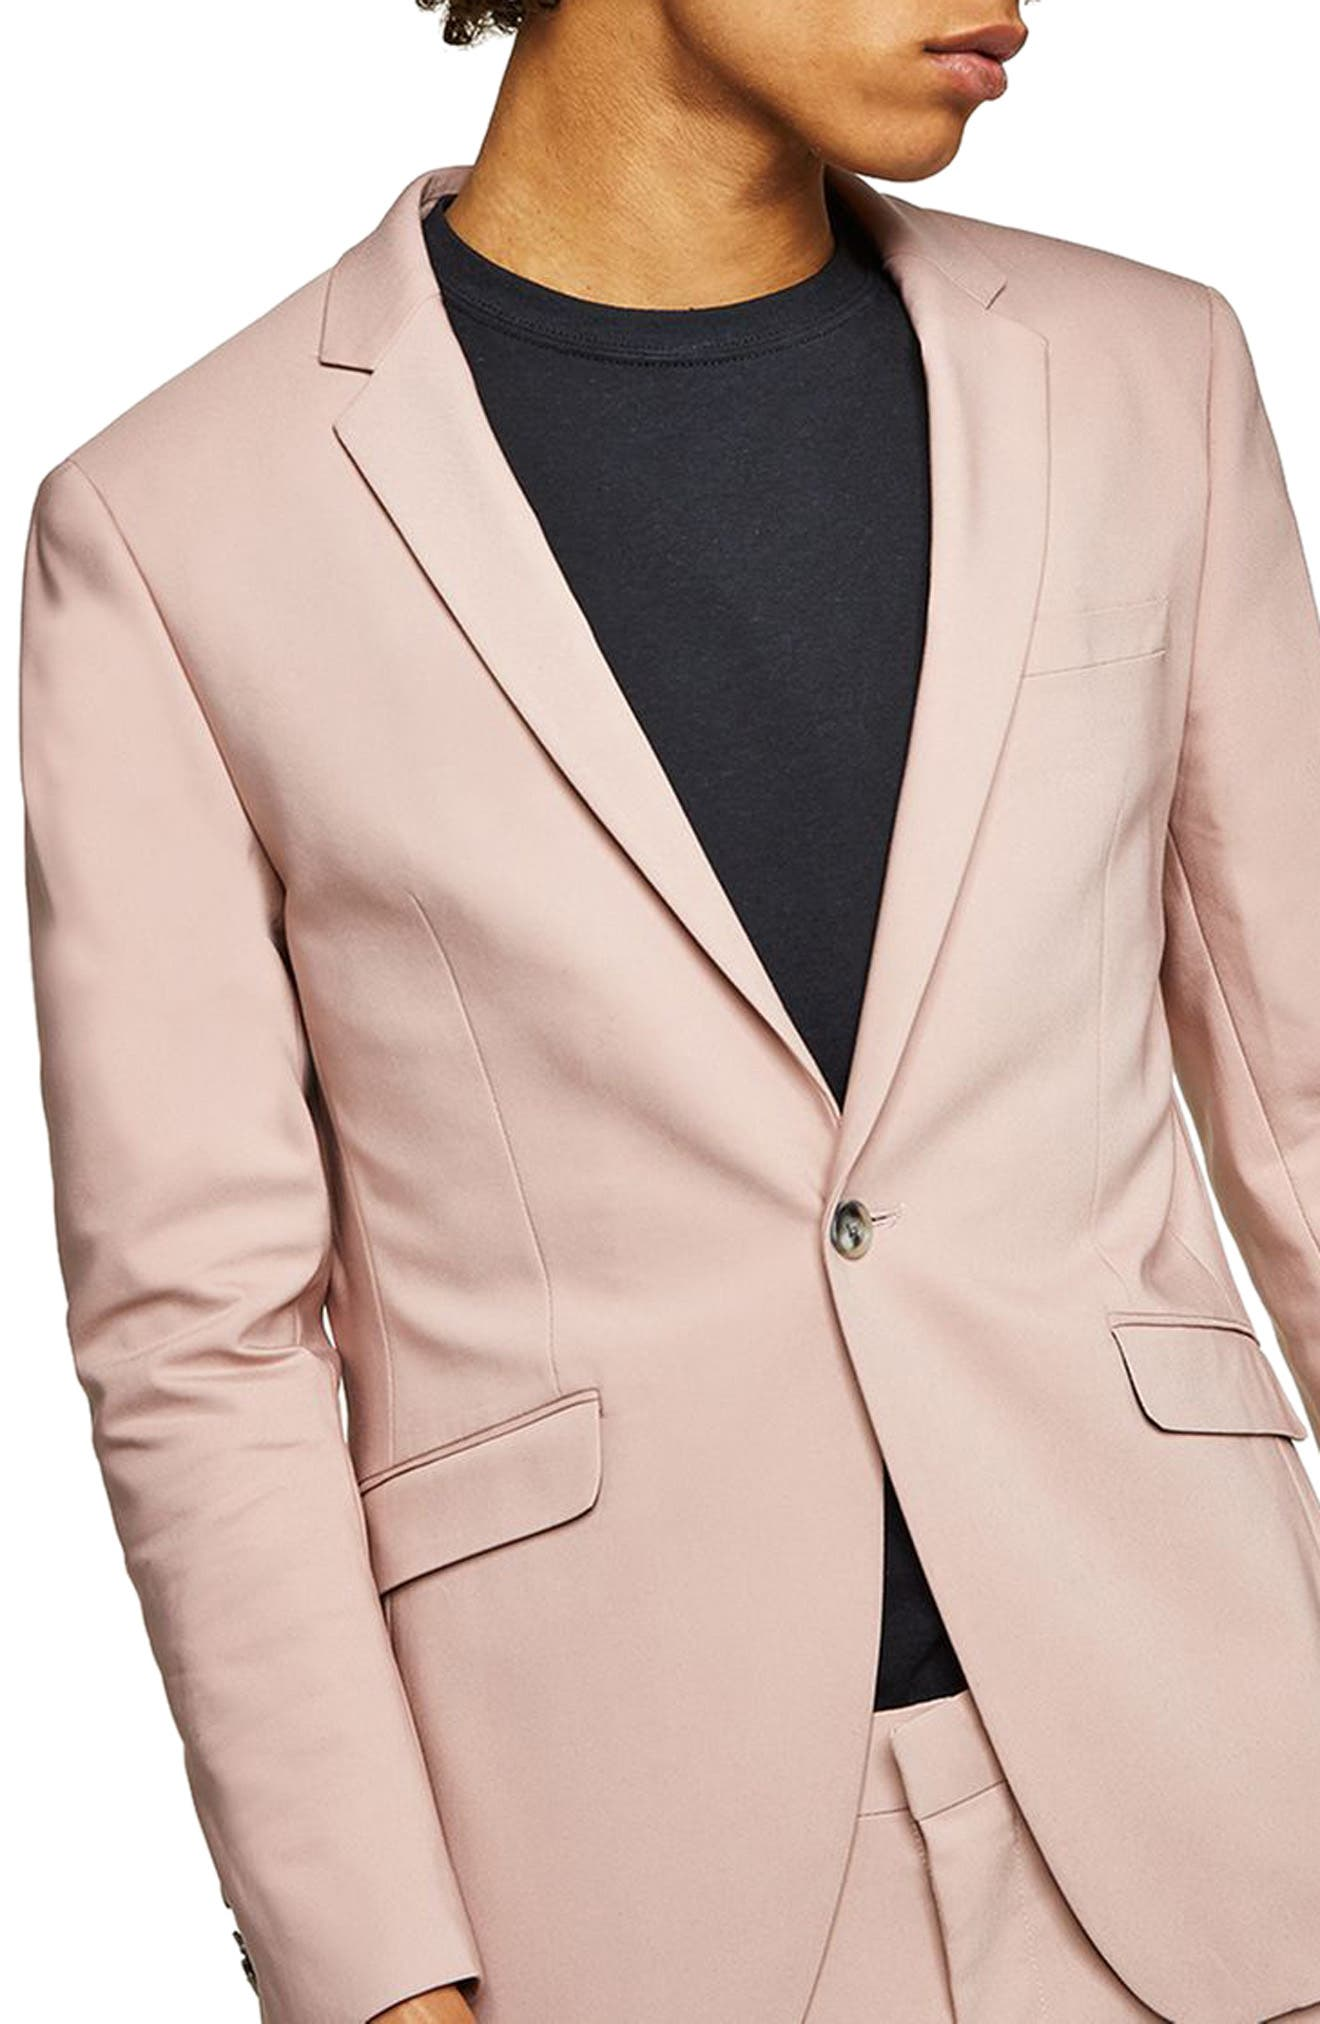 Skinny Fit Suit Jacket,                         Main,                         color, Pink Multi